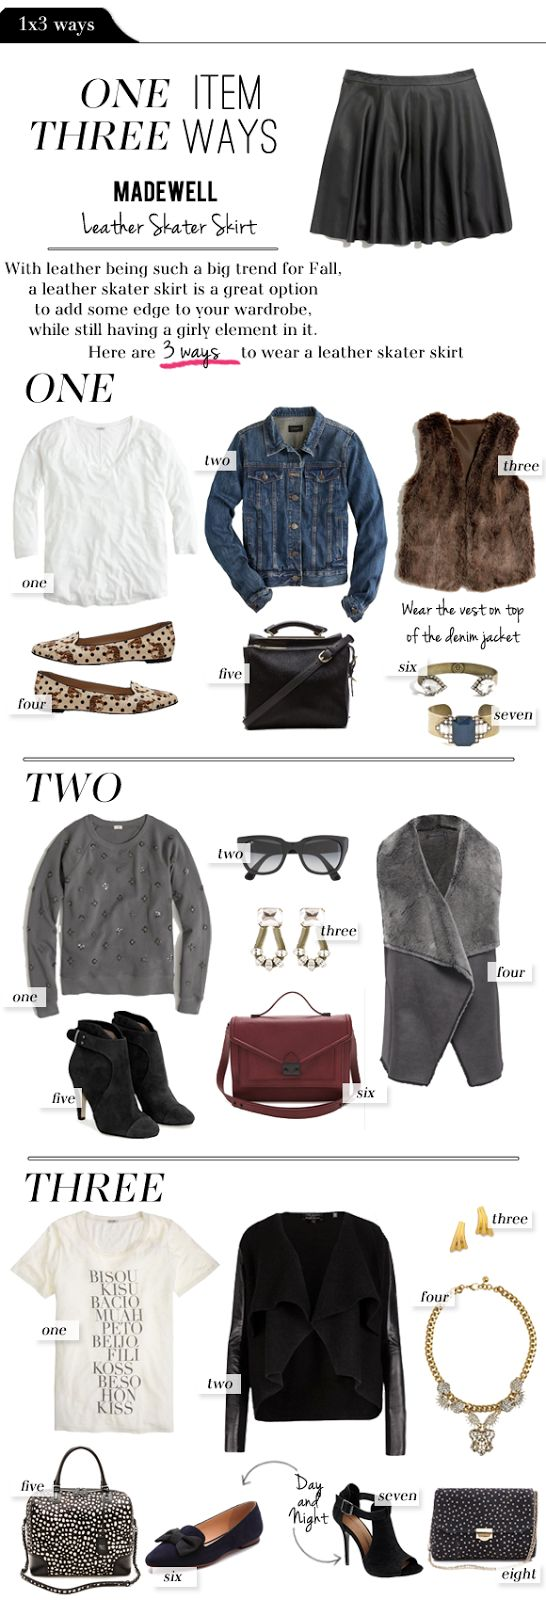 The Vault Files: Blog Series: 1x3 ways - Madewell Leather Skater Skirt outfit